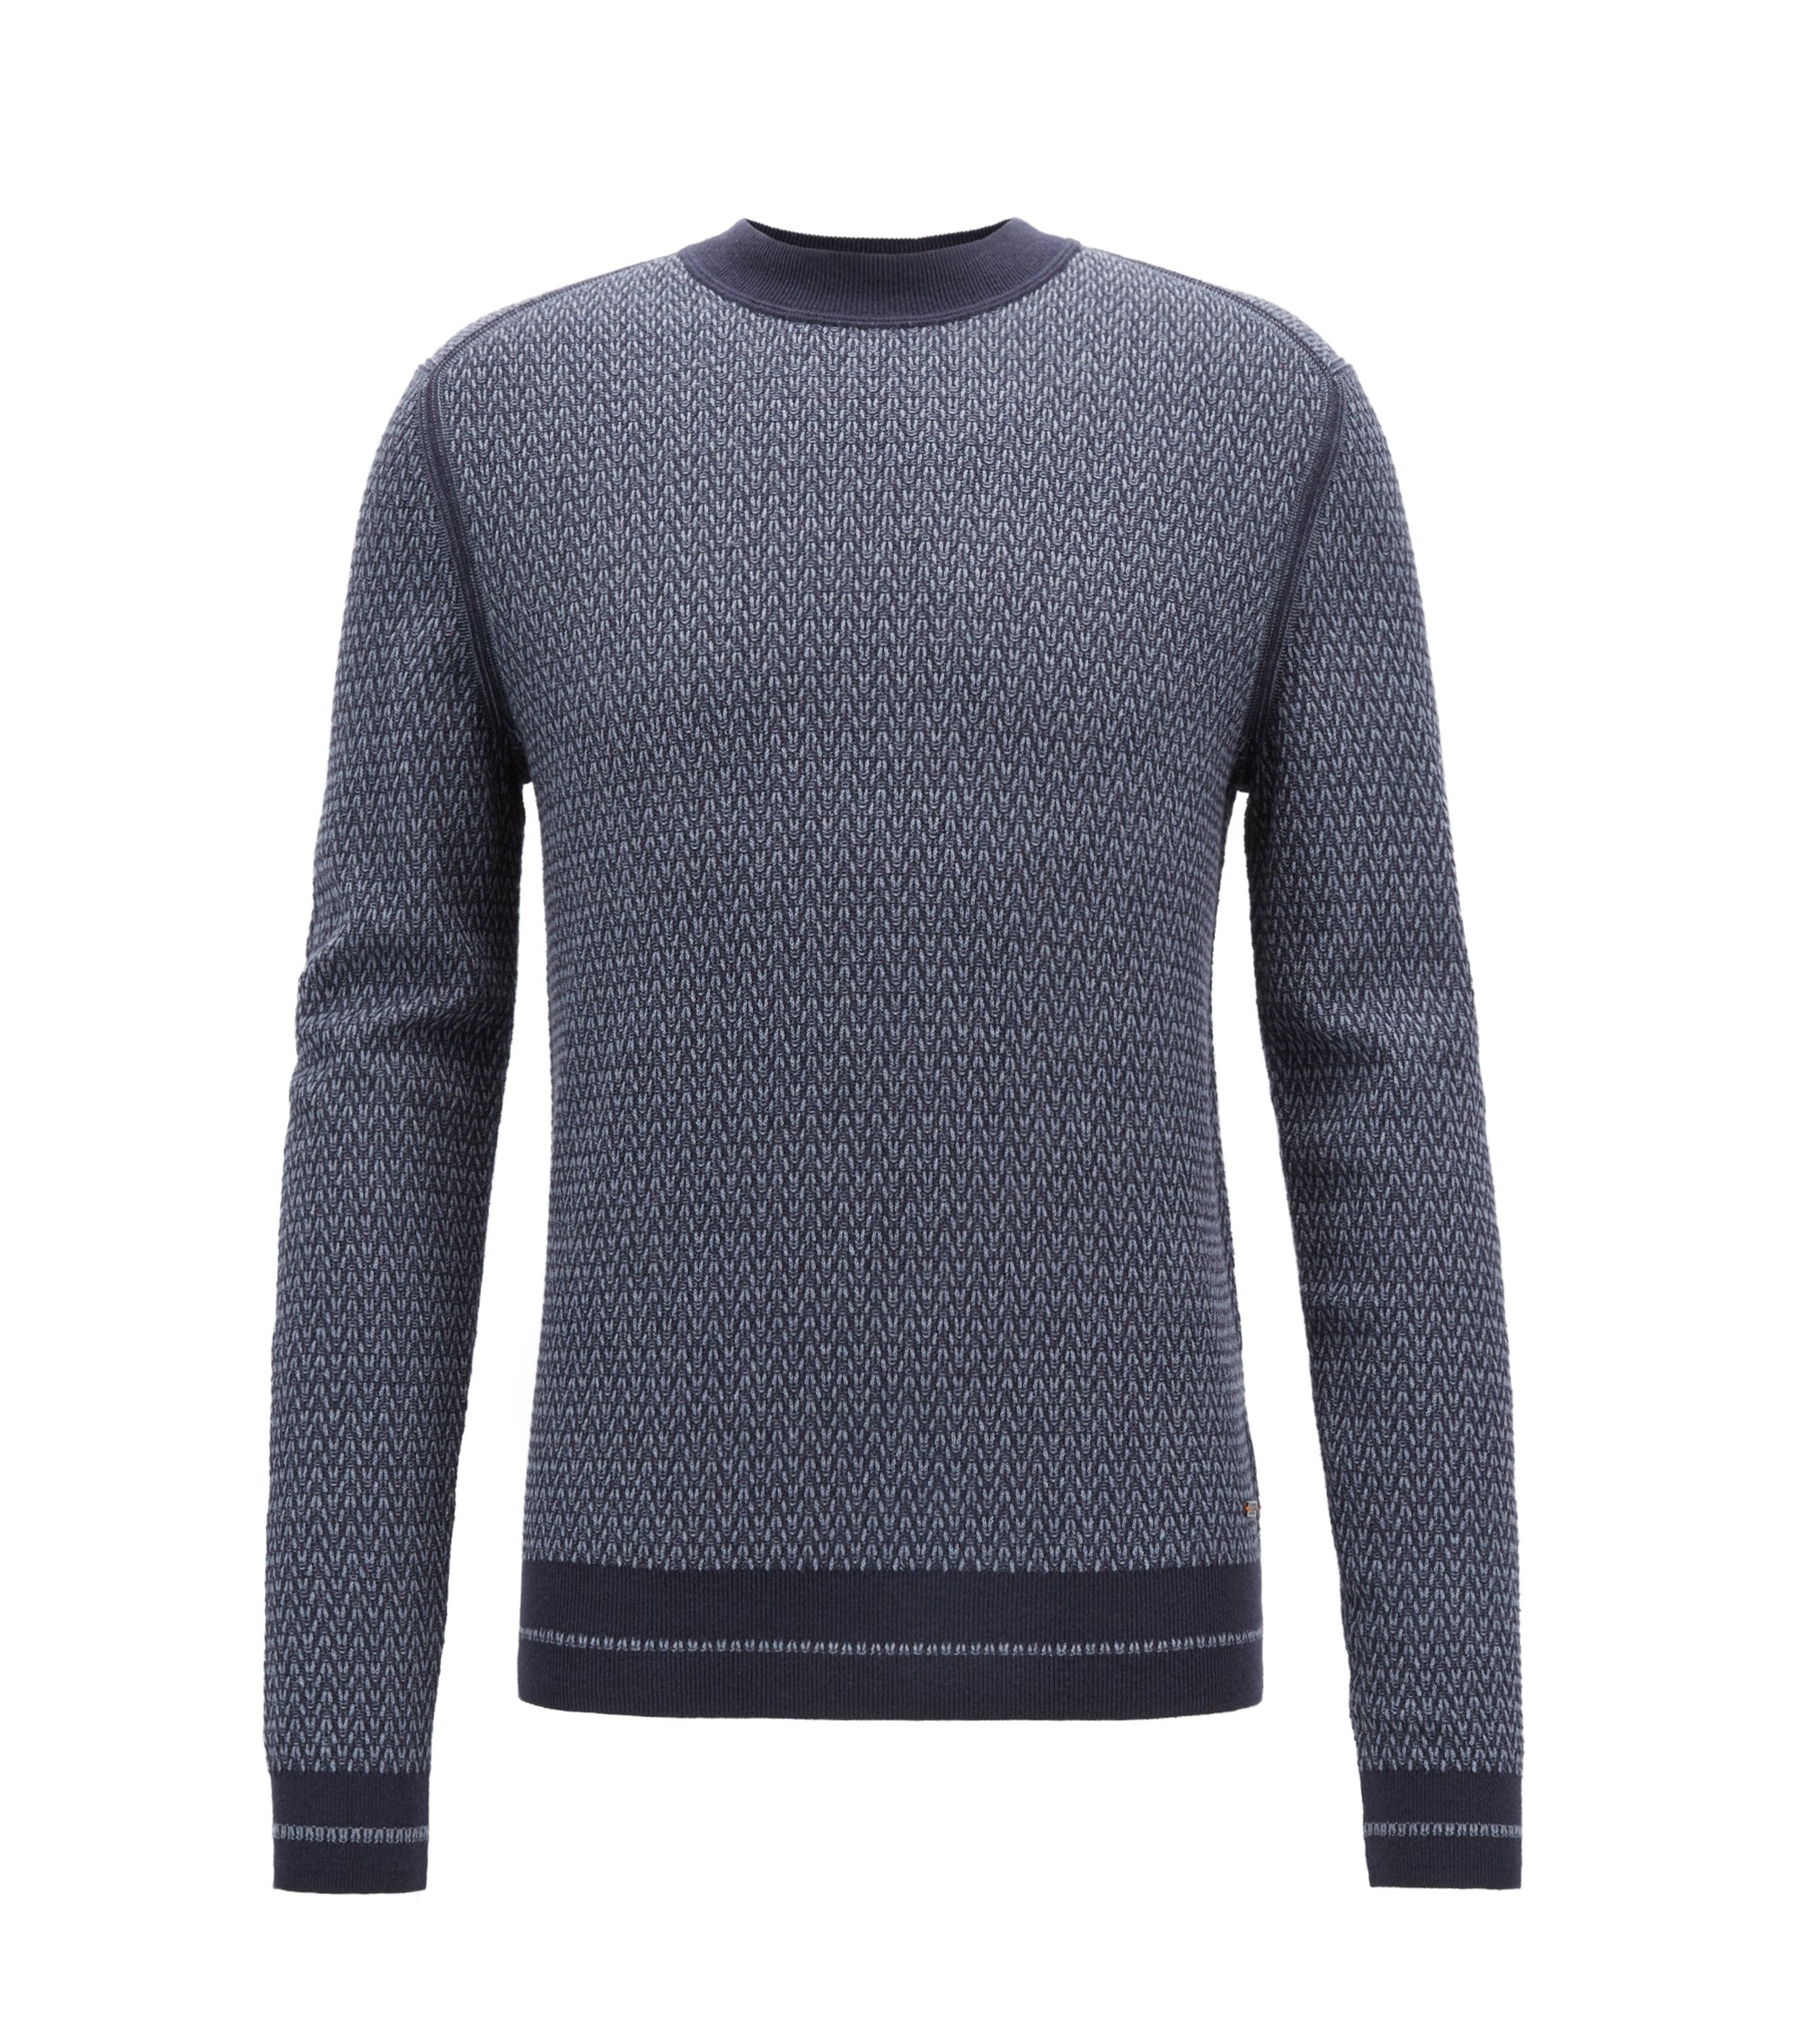 Crew-neck sweater in a micro-structured cotton blend, Dark Blue